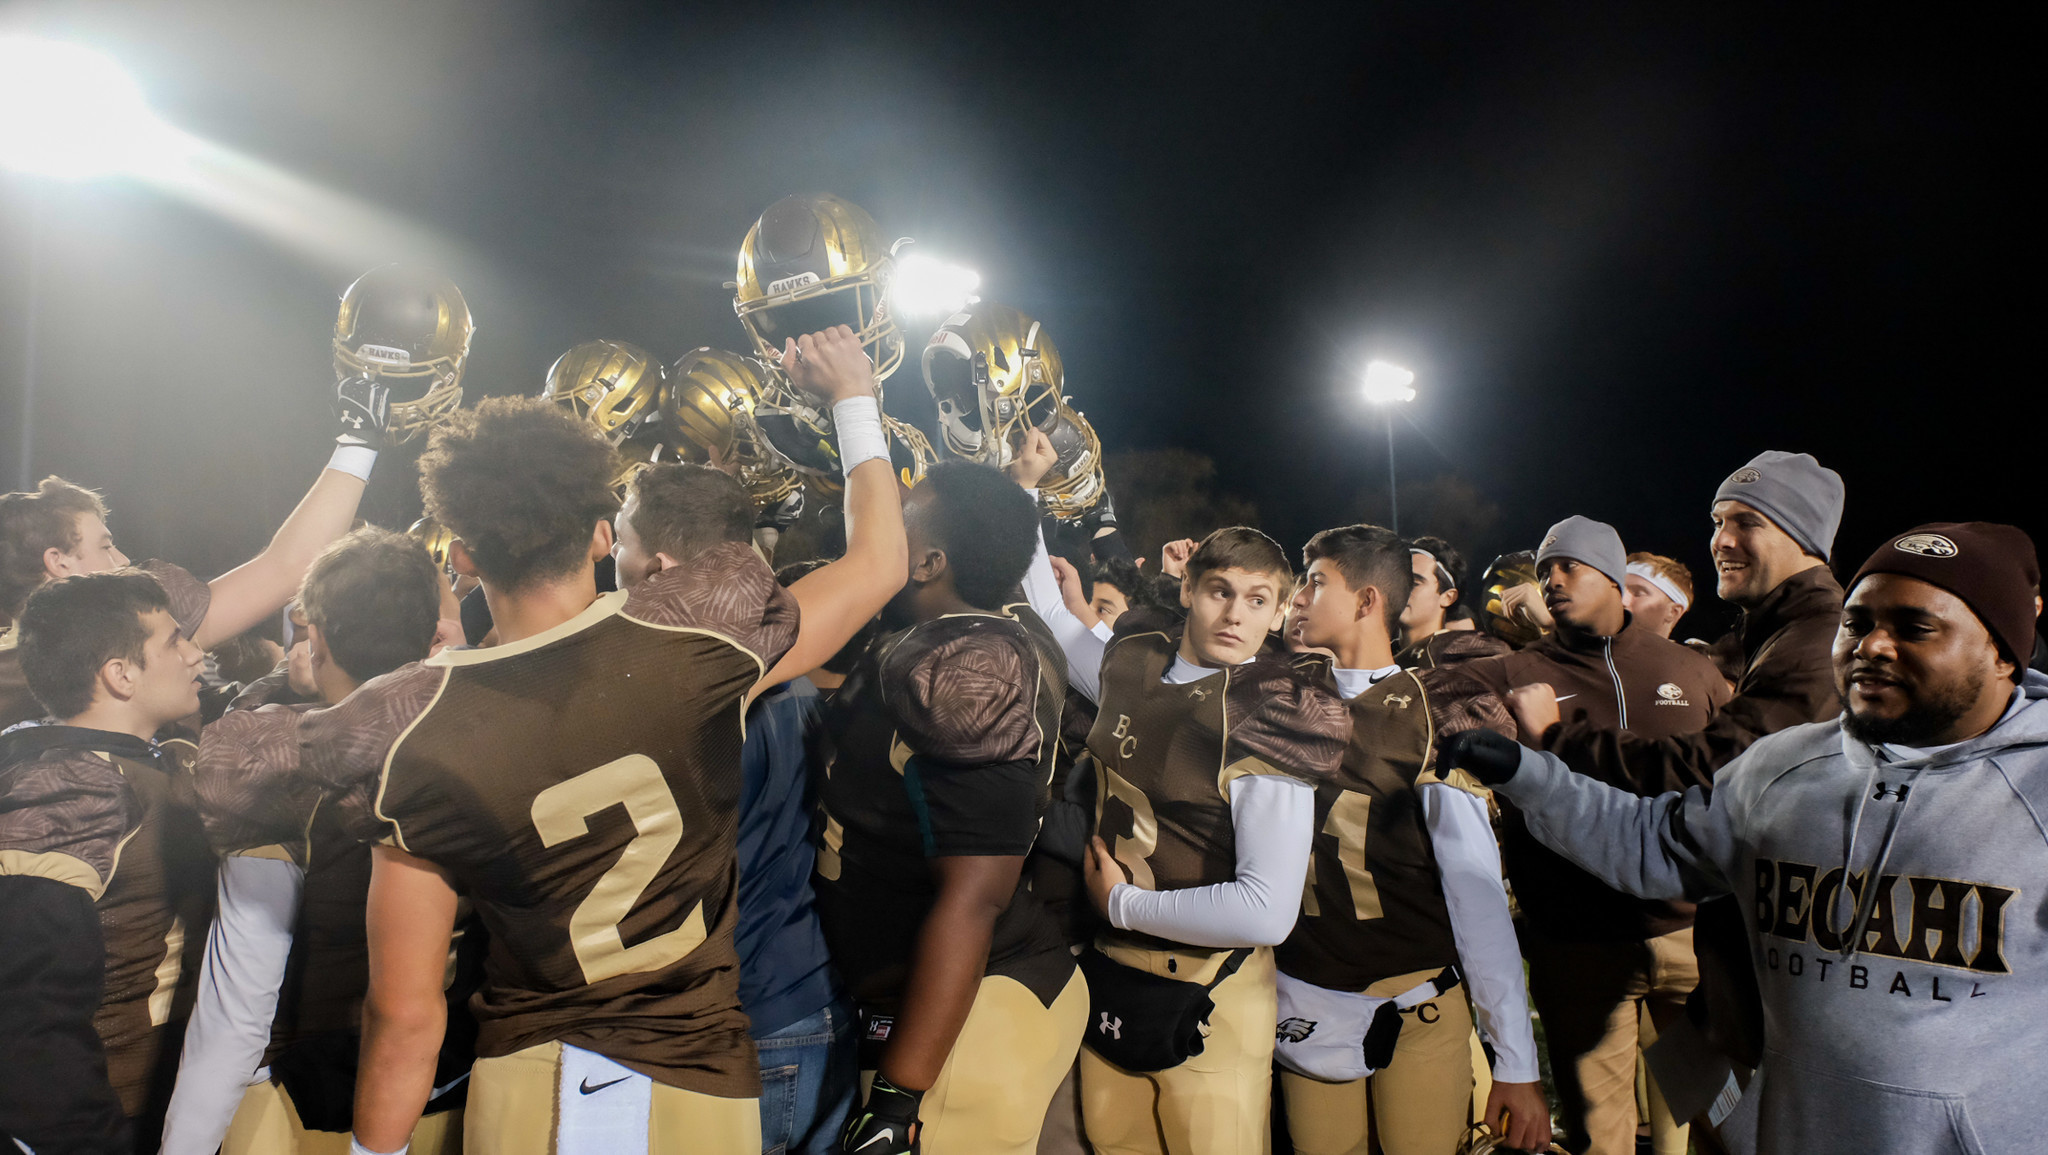 Big plays carry Bethlehem Catholic to 51-20 PIAA playoff win over Pottsgrove - The Morning Call